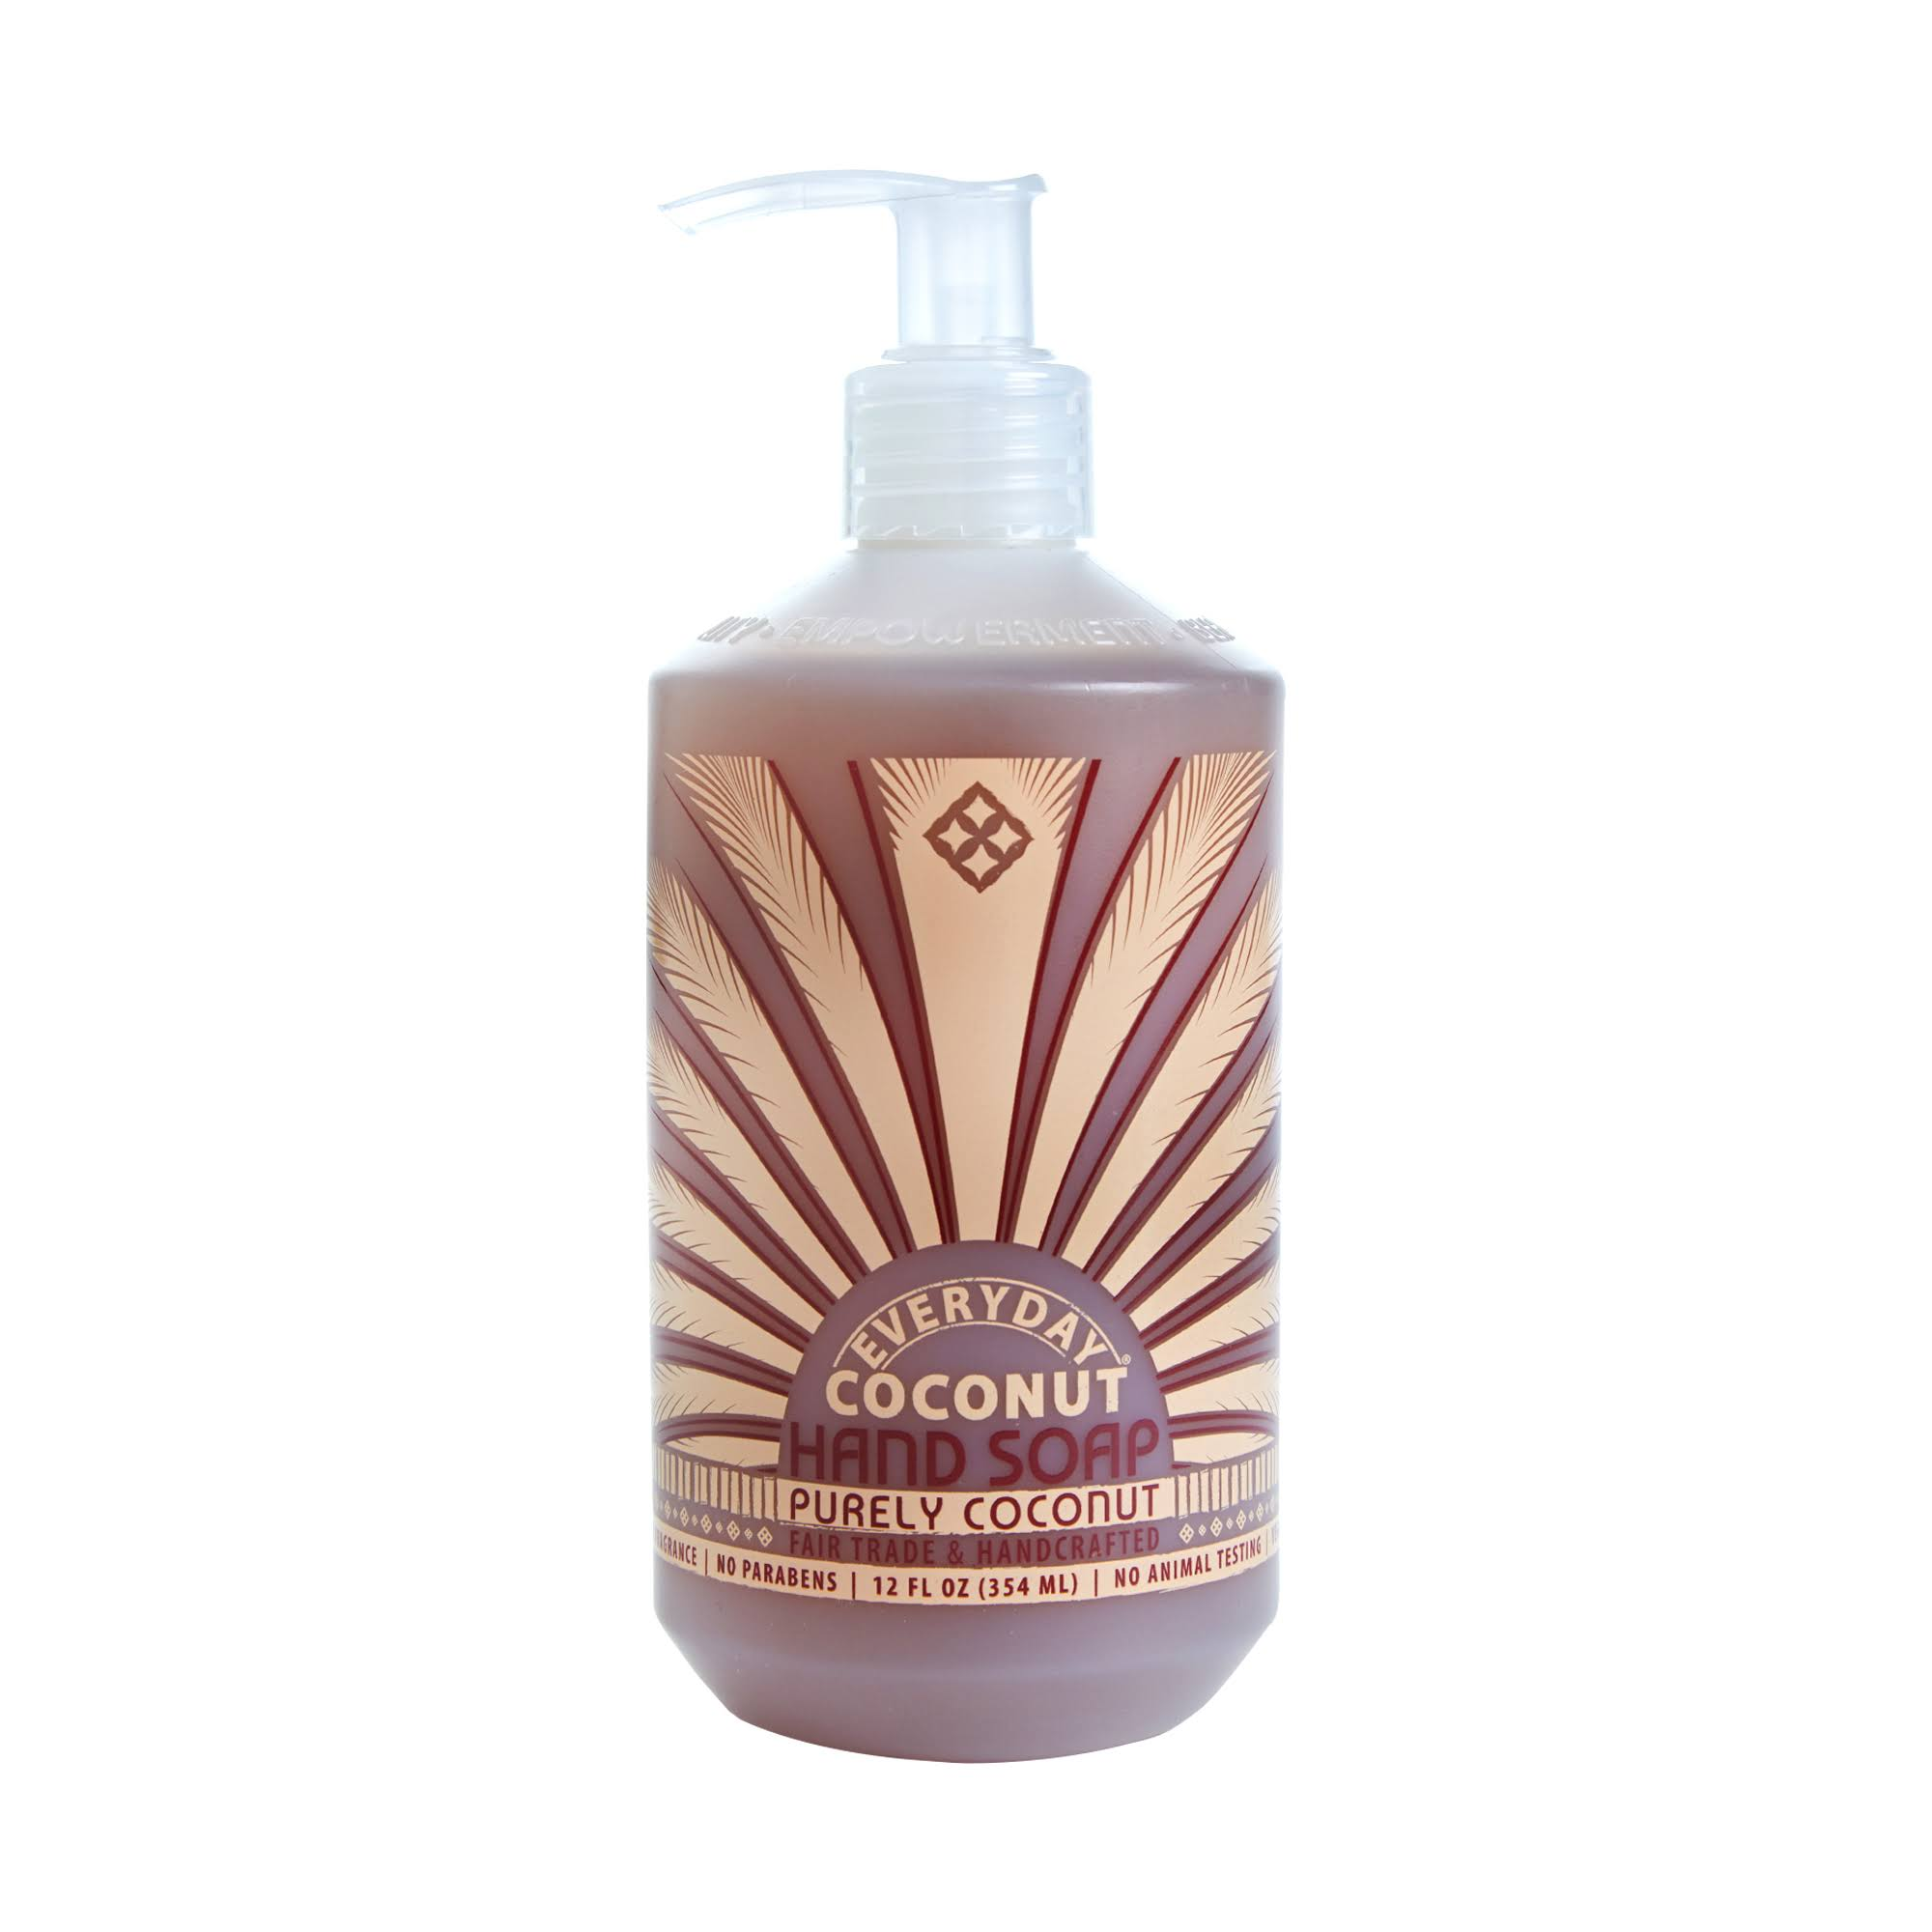 Everyday Coconut Hand Soap - Purely Coconut, 12oz